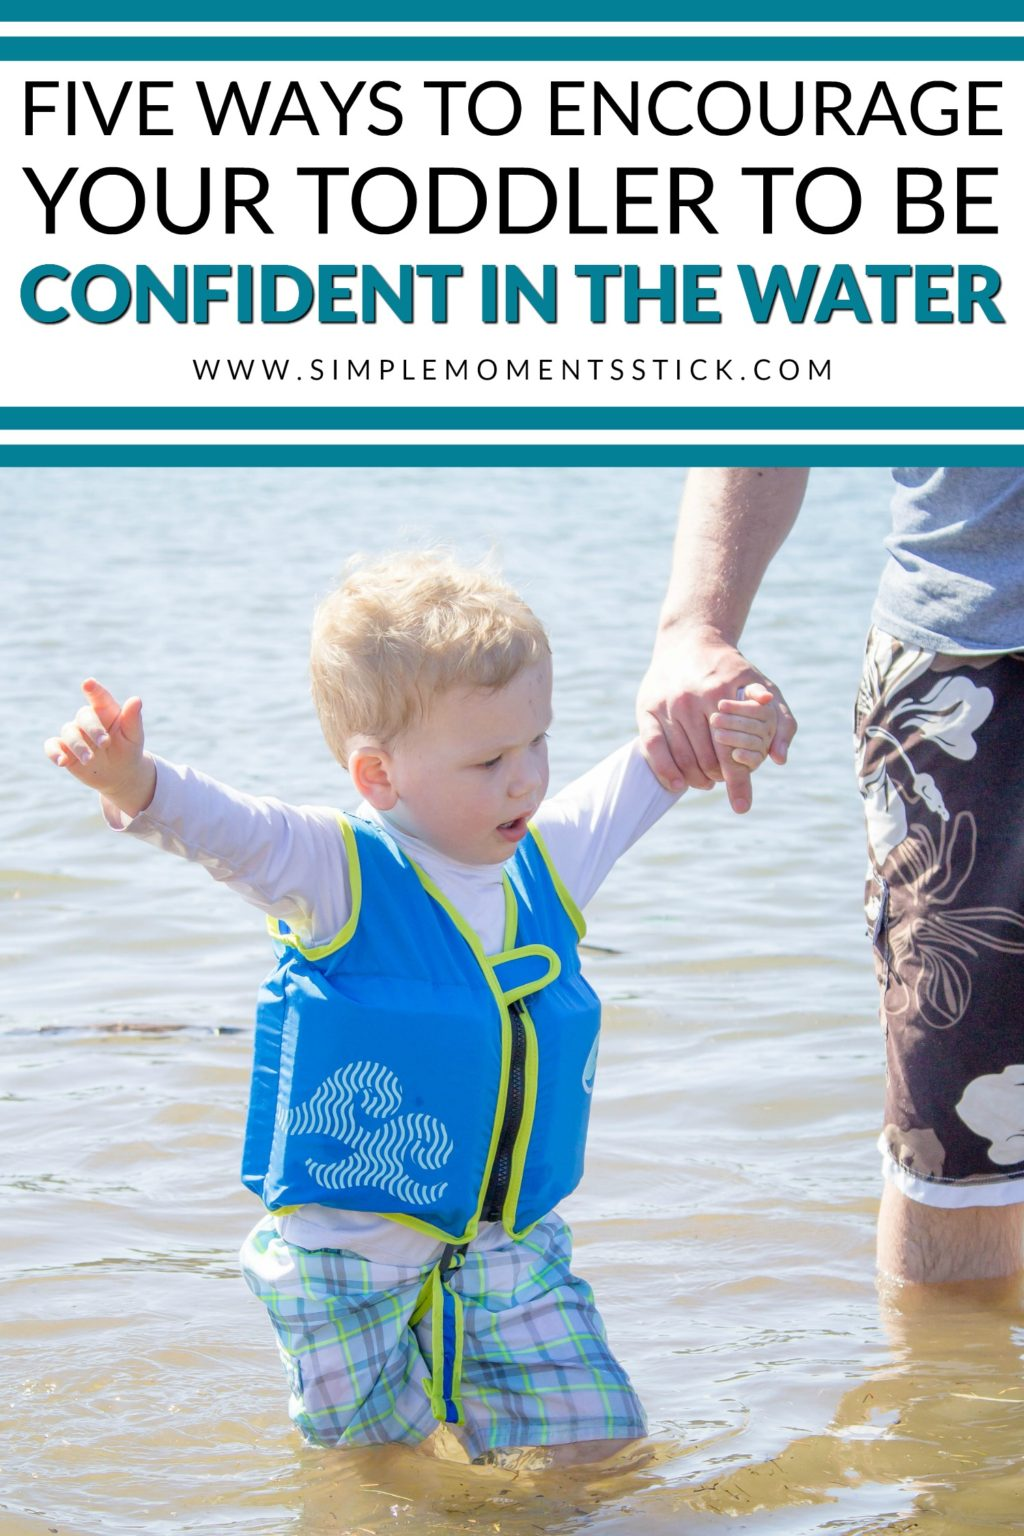 Toddler boy wearing SwimWays vest in water holding man's hand and pointing